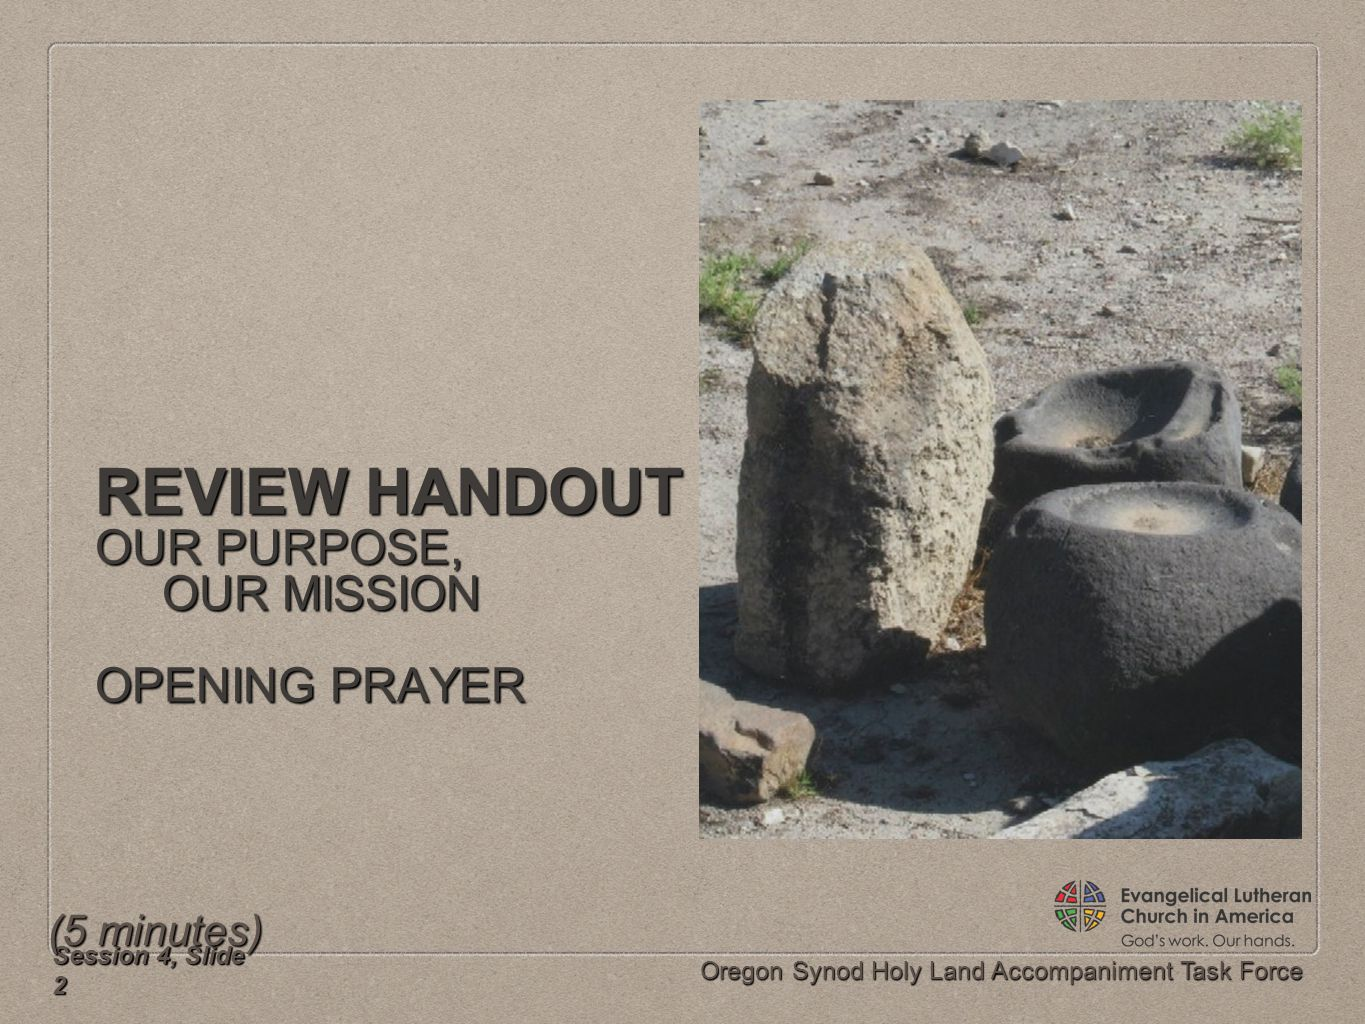 Oregon Synod Holy Land Accompaniment Task Force REVIEW HANDOUT OUR PURPOSE, OUR MISSION OUR MISSION OPENING PRAYER Session 4, Slide 2 (5 minutes)